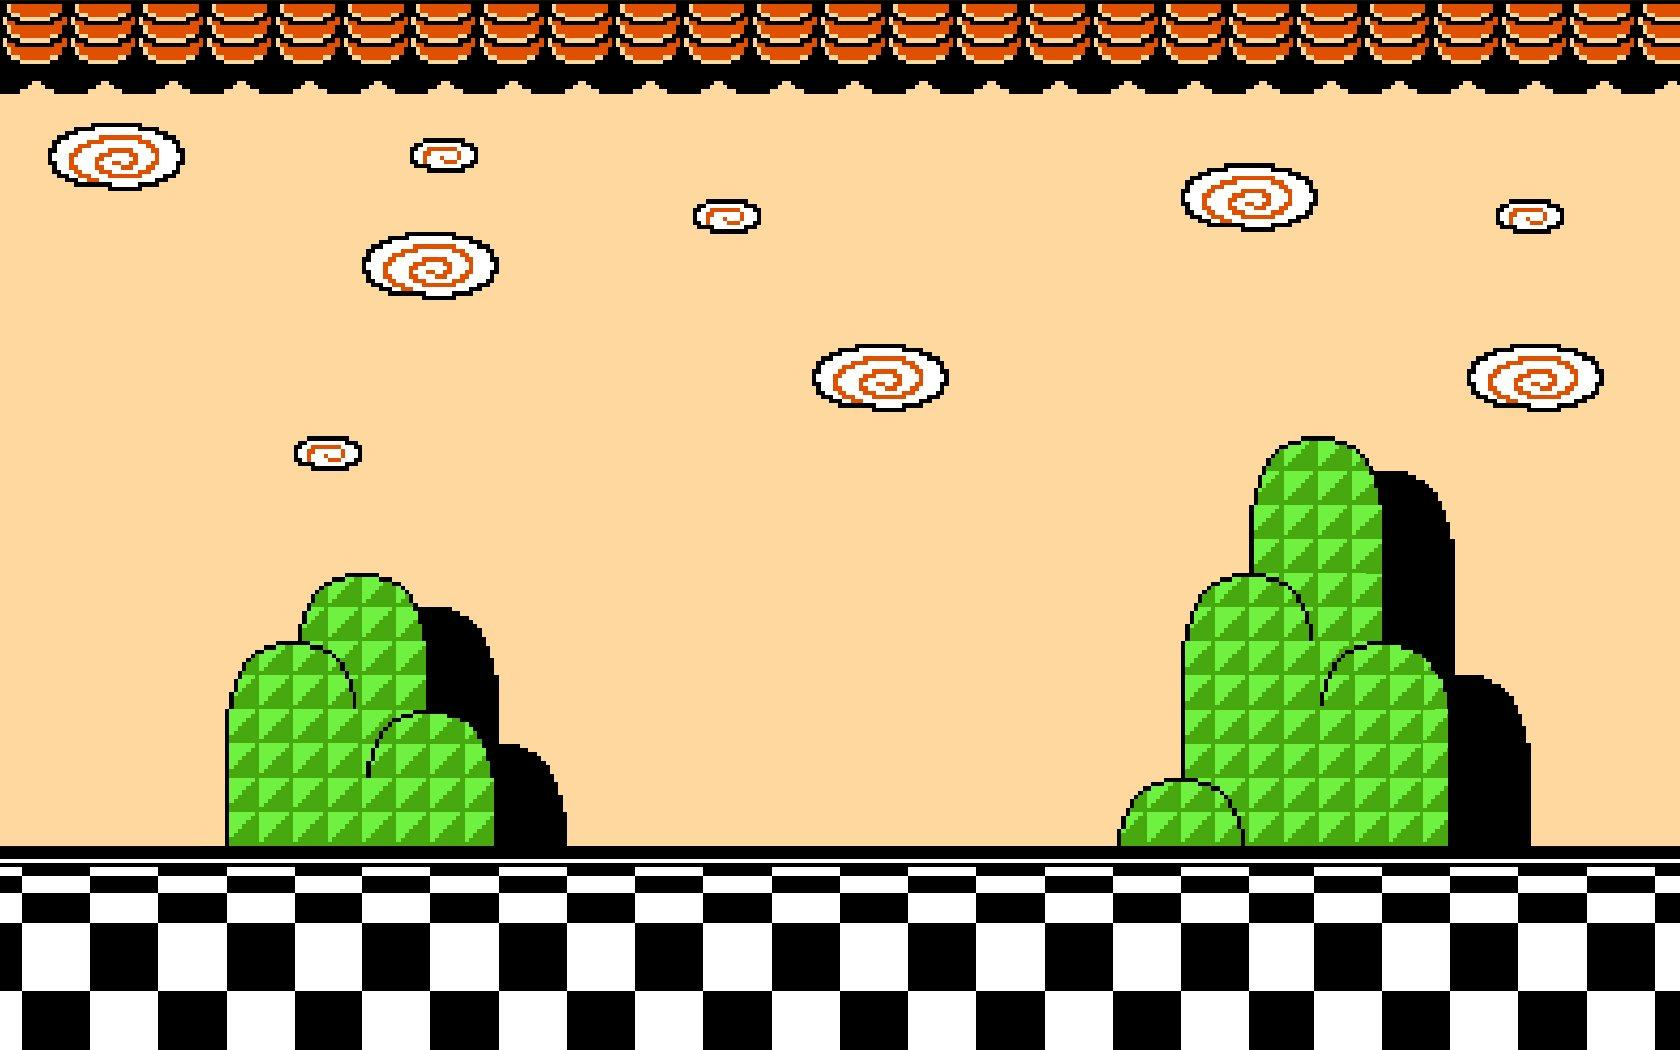 Super Mario Bros. 3 Wallpapers and Backgrounds Image